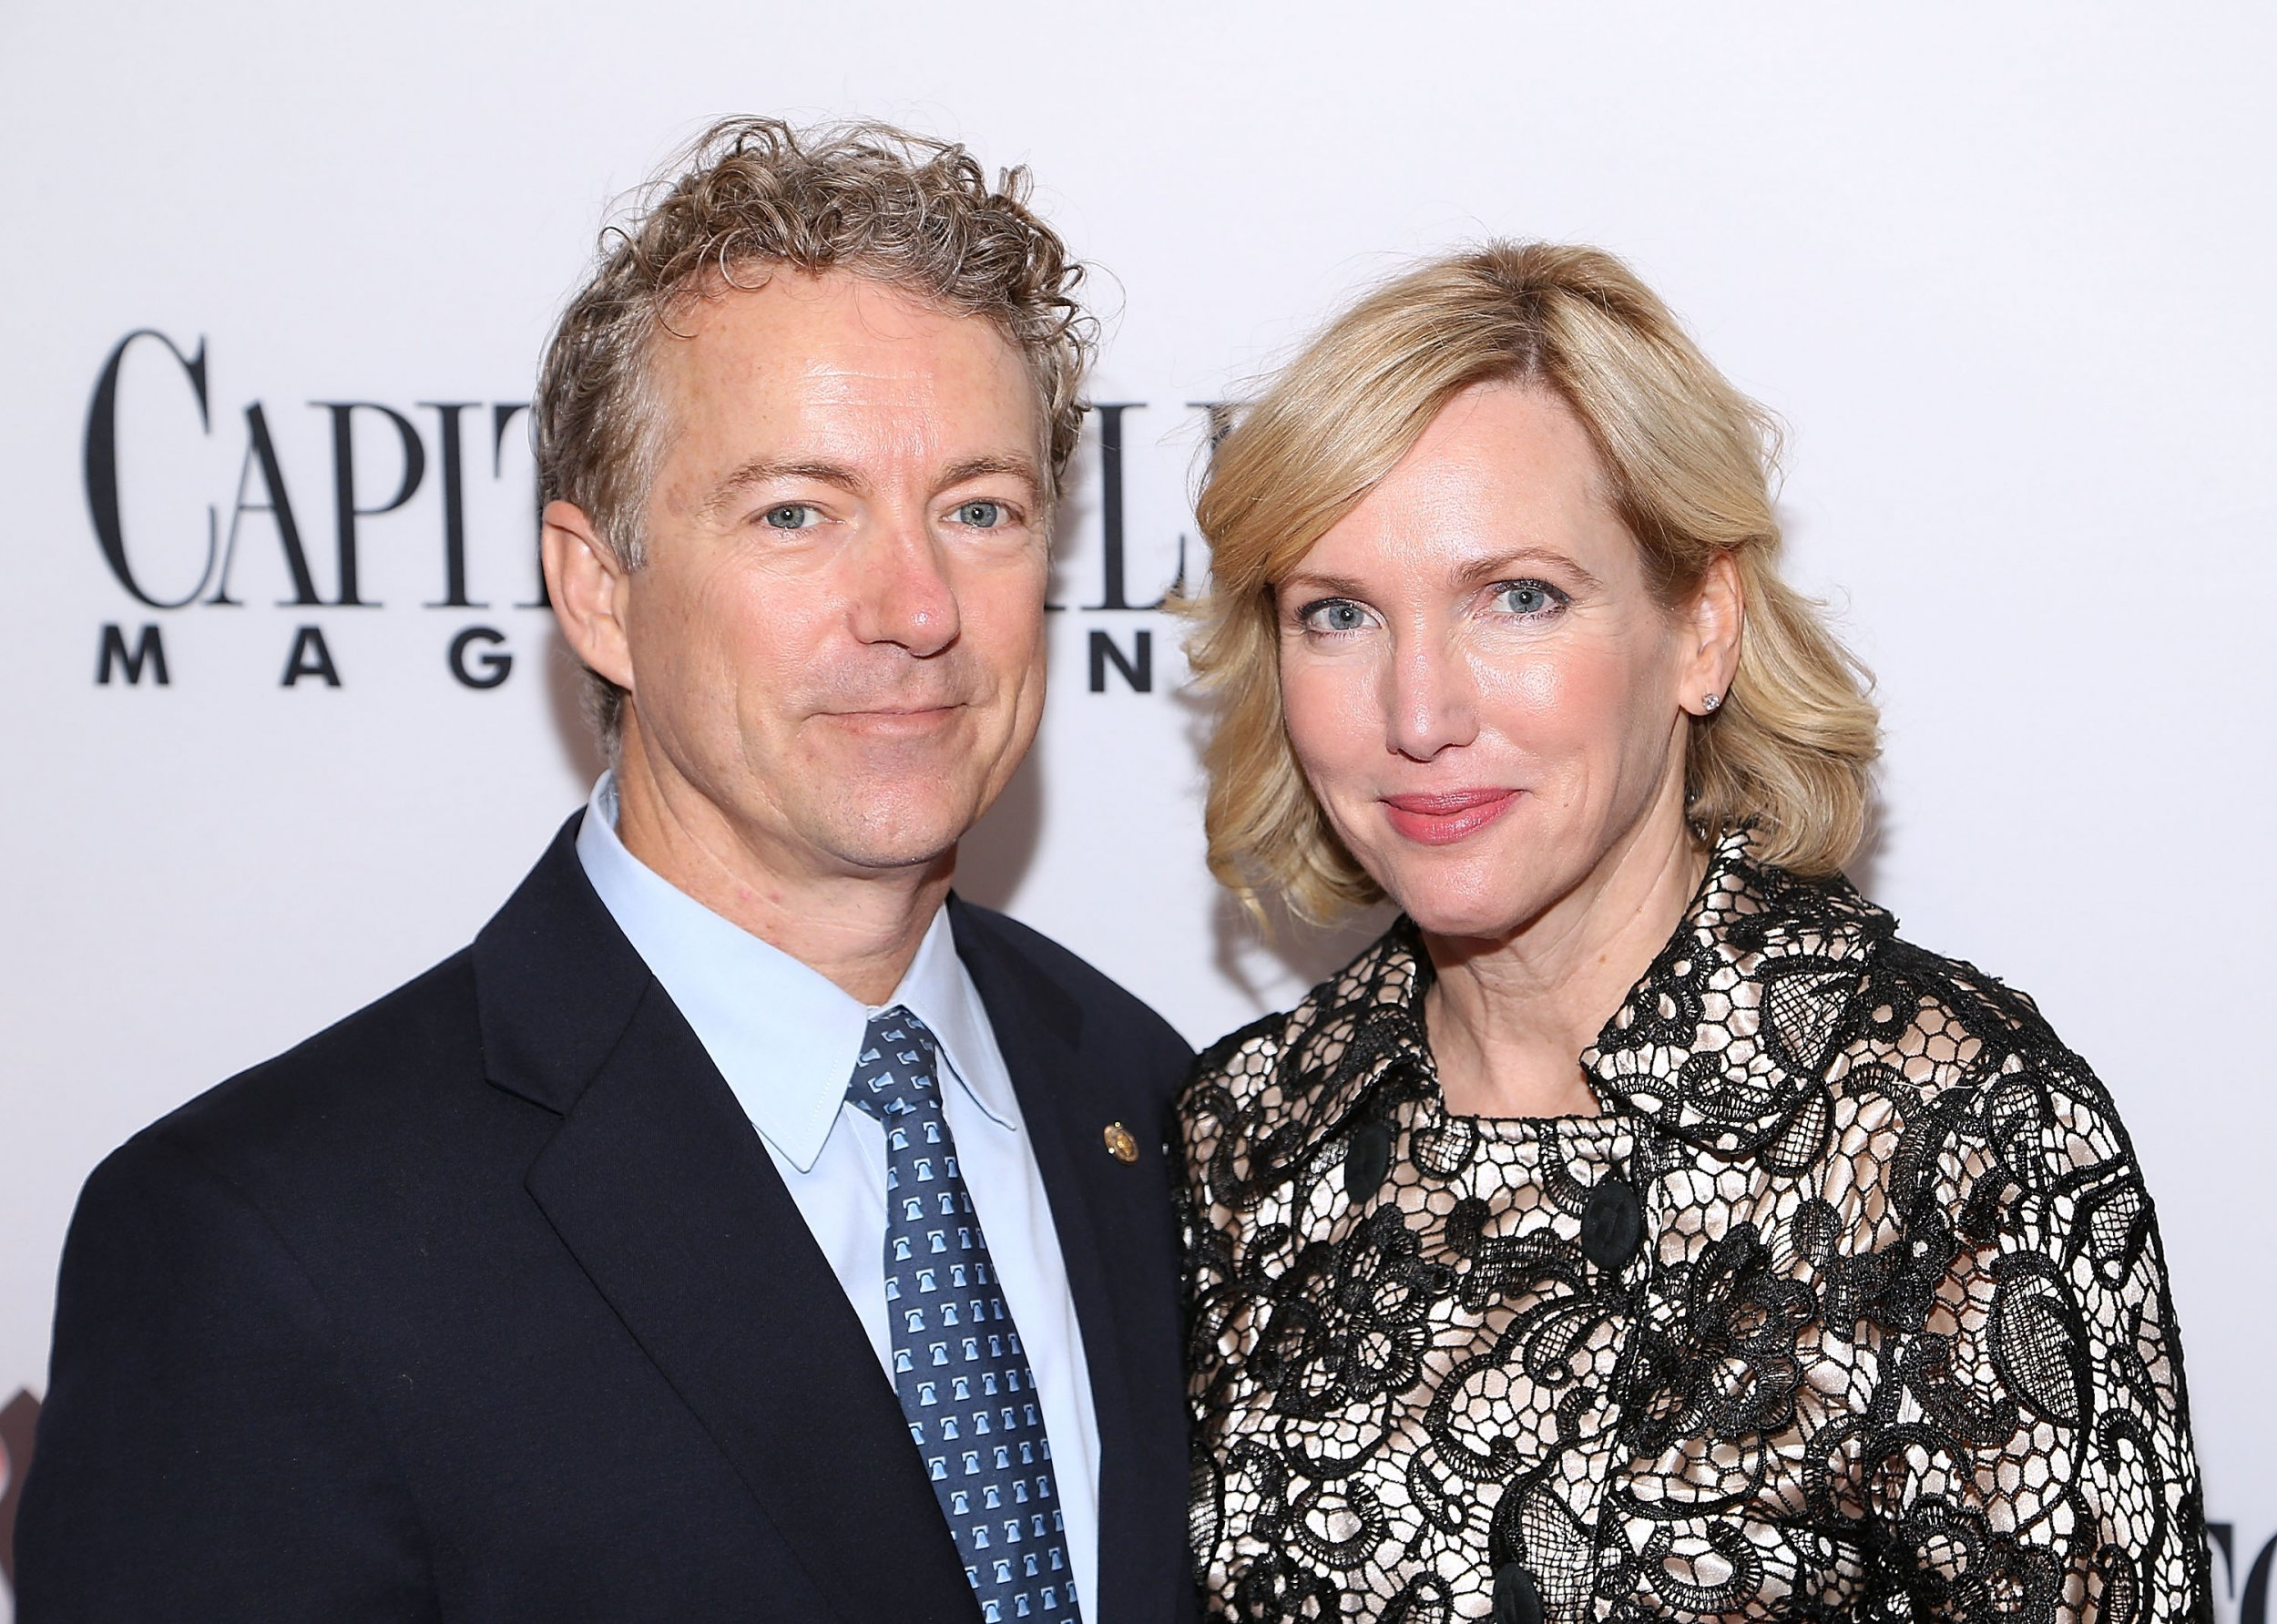 Rand Paul's wife says she keeps loaded gun by her bed over fear of liberals